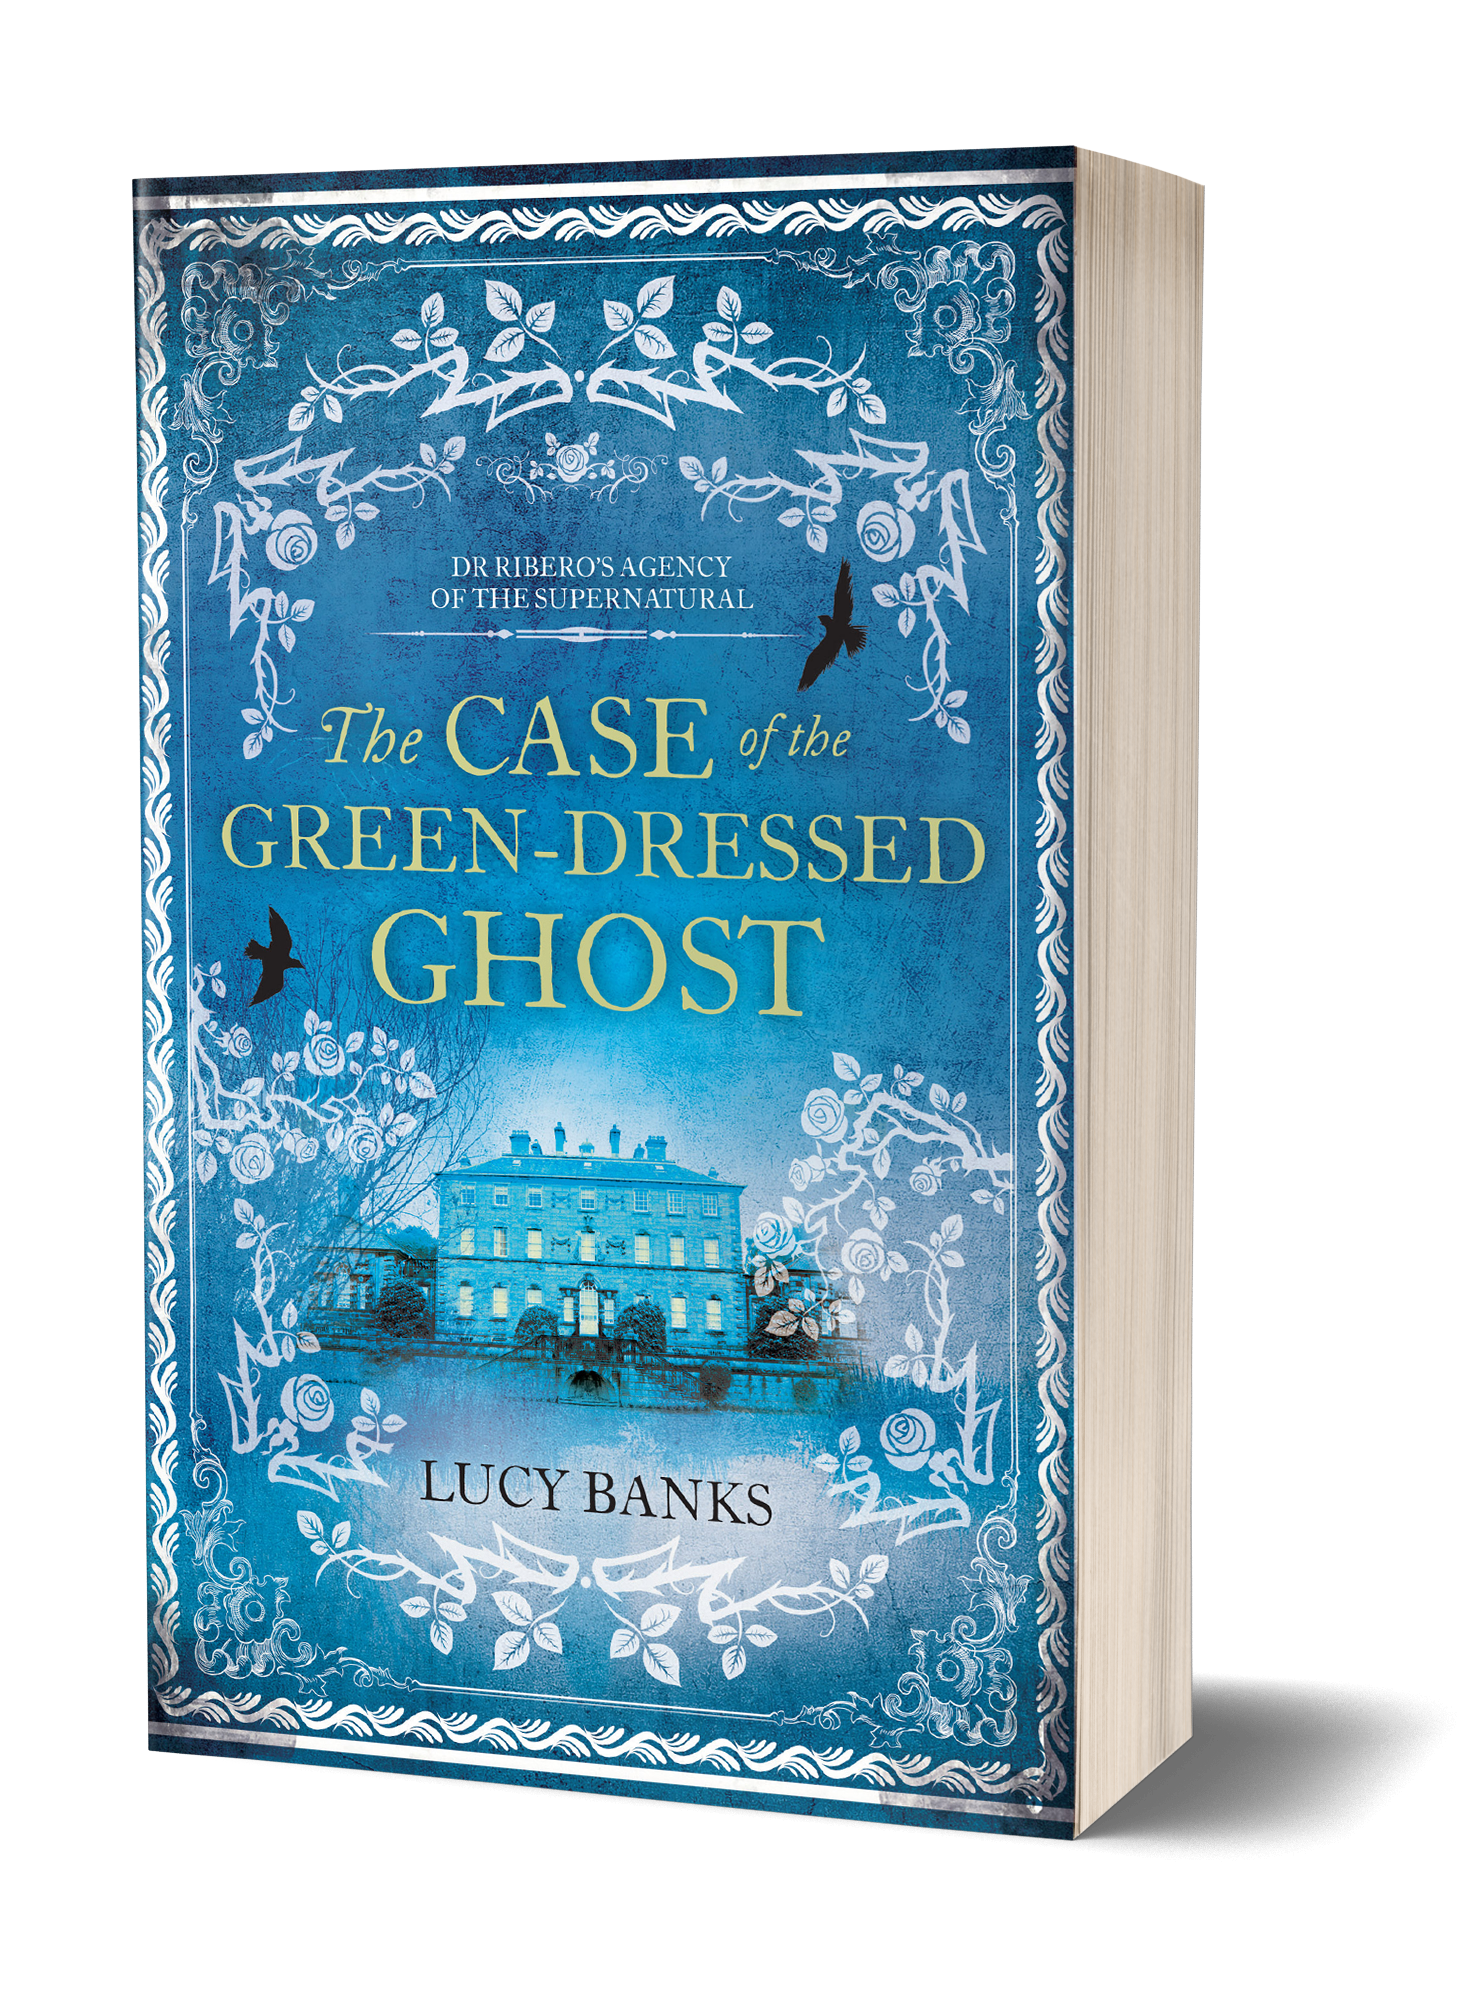 The Case of the Green Dressed Ghost book cover, blue background, large, old, abandoned manor, birds flying